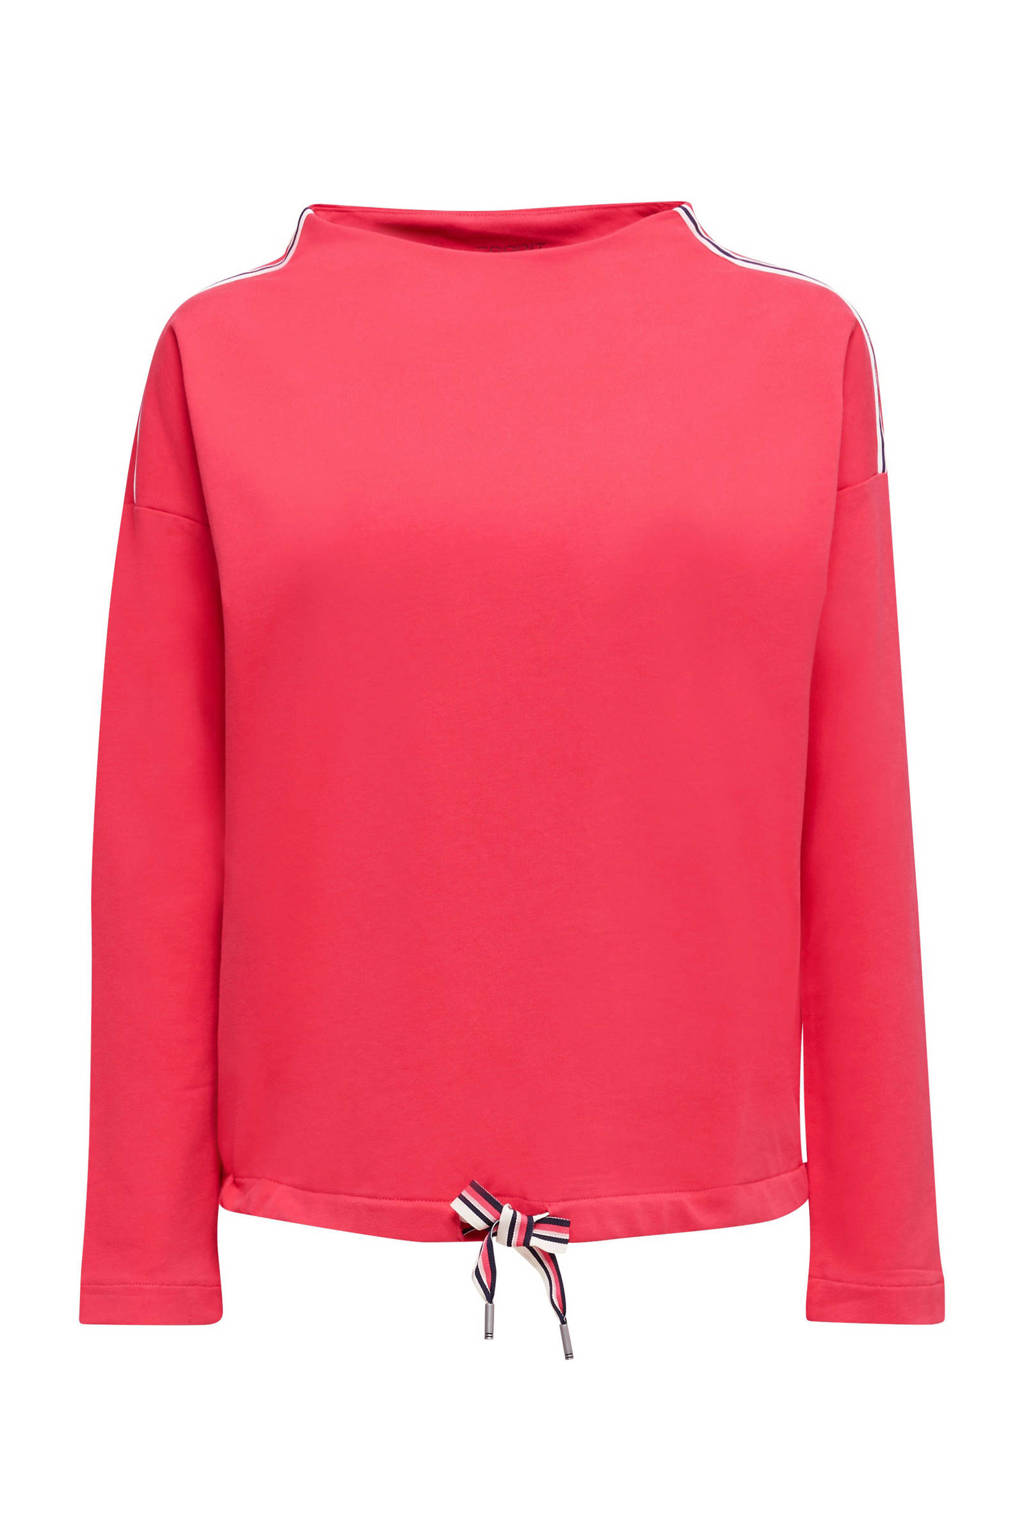 ESPRIT Women Sports sweater roze, Roze